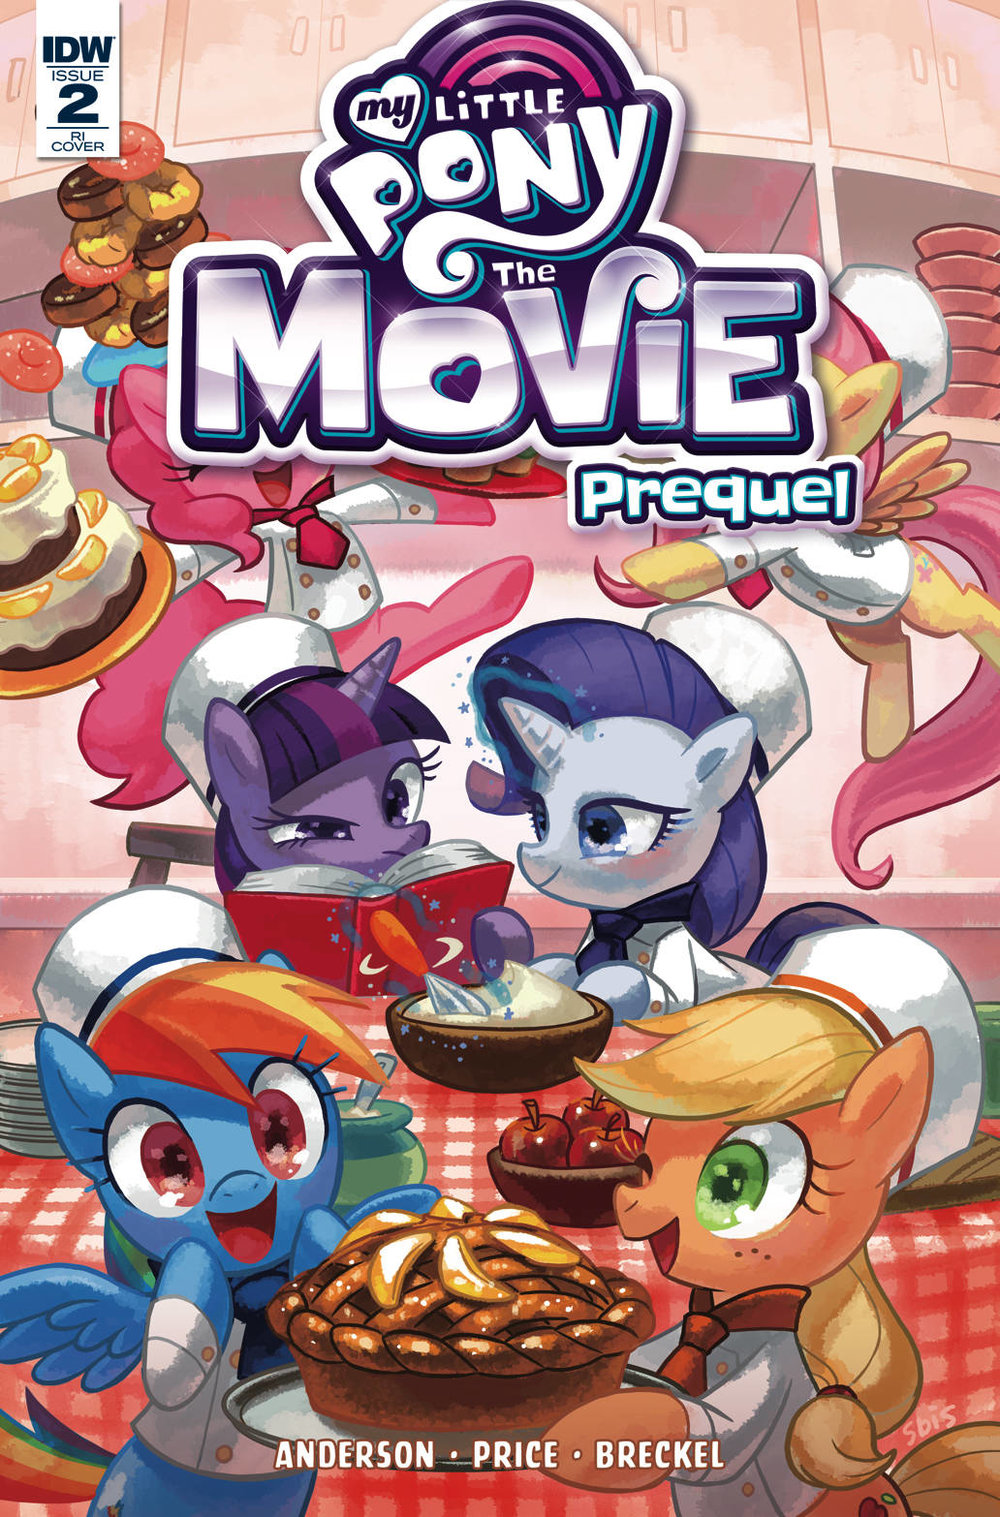 MY LITTLE PONY MOVIE PREQUEL 2 10 COPY INCV.jpg